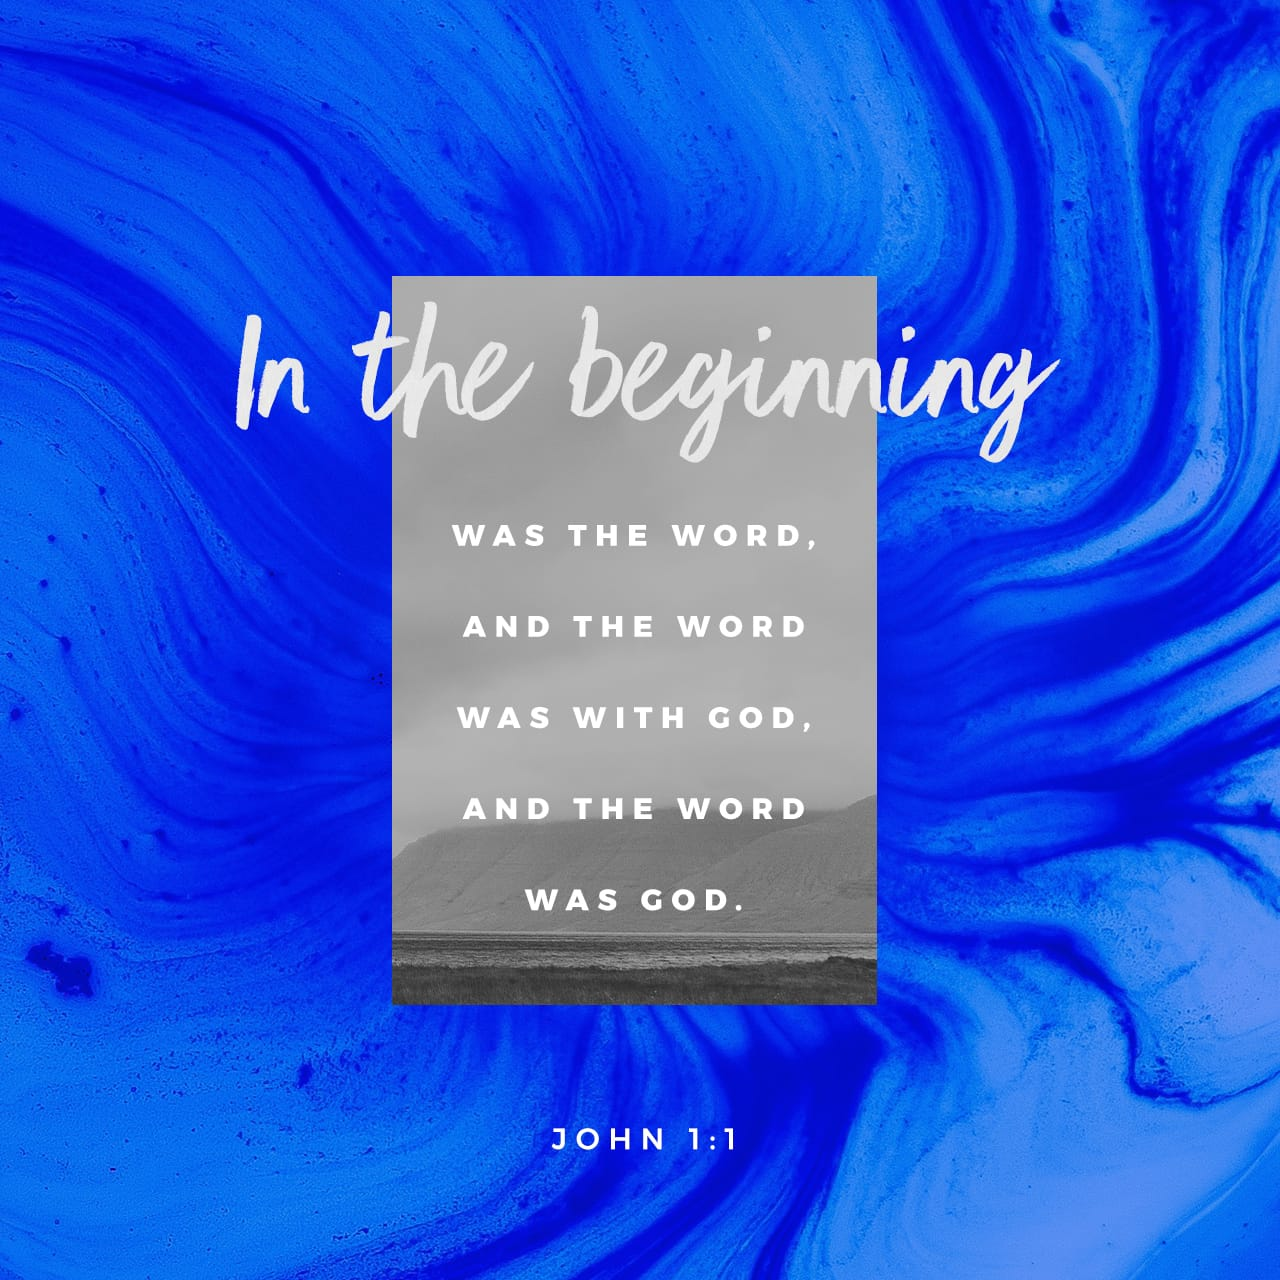 John 1:1 In the beginning was the Word, and the Word was with God, and the Word was God. | King James Version (KJV)